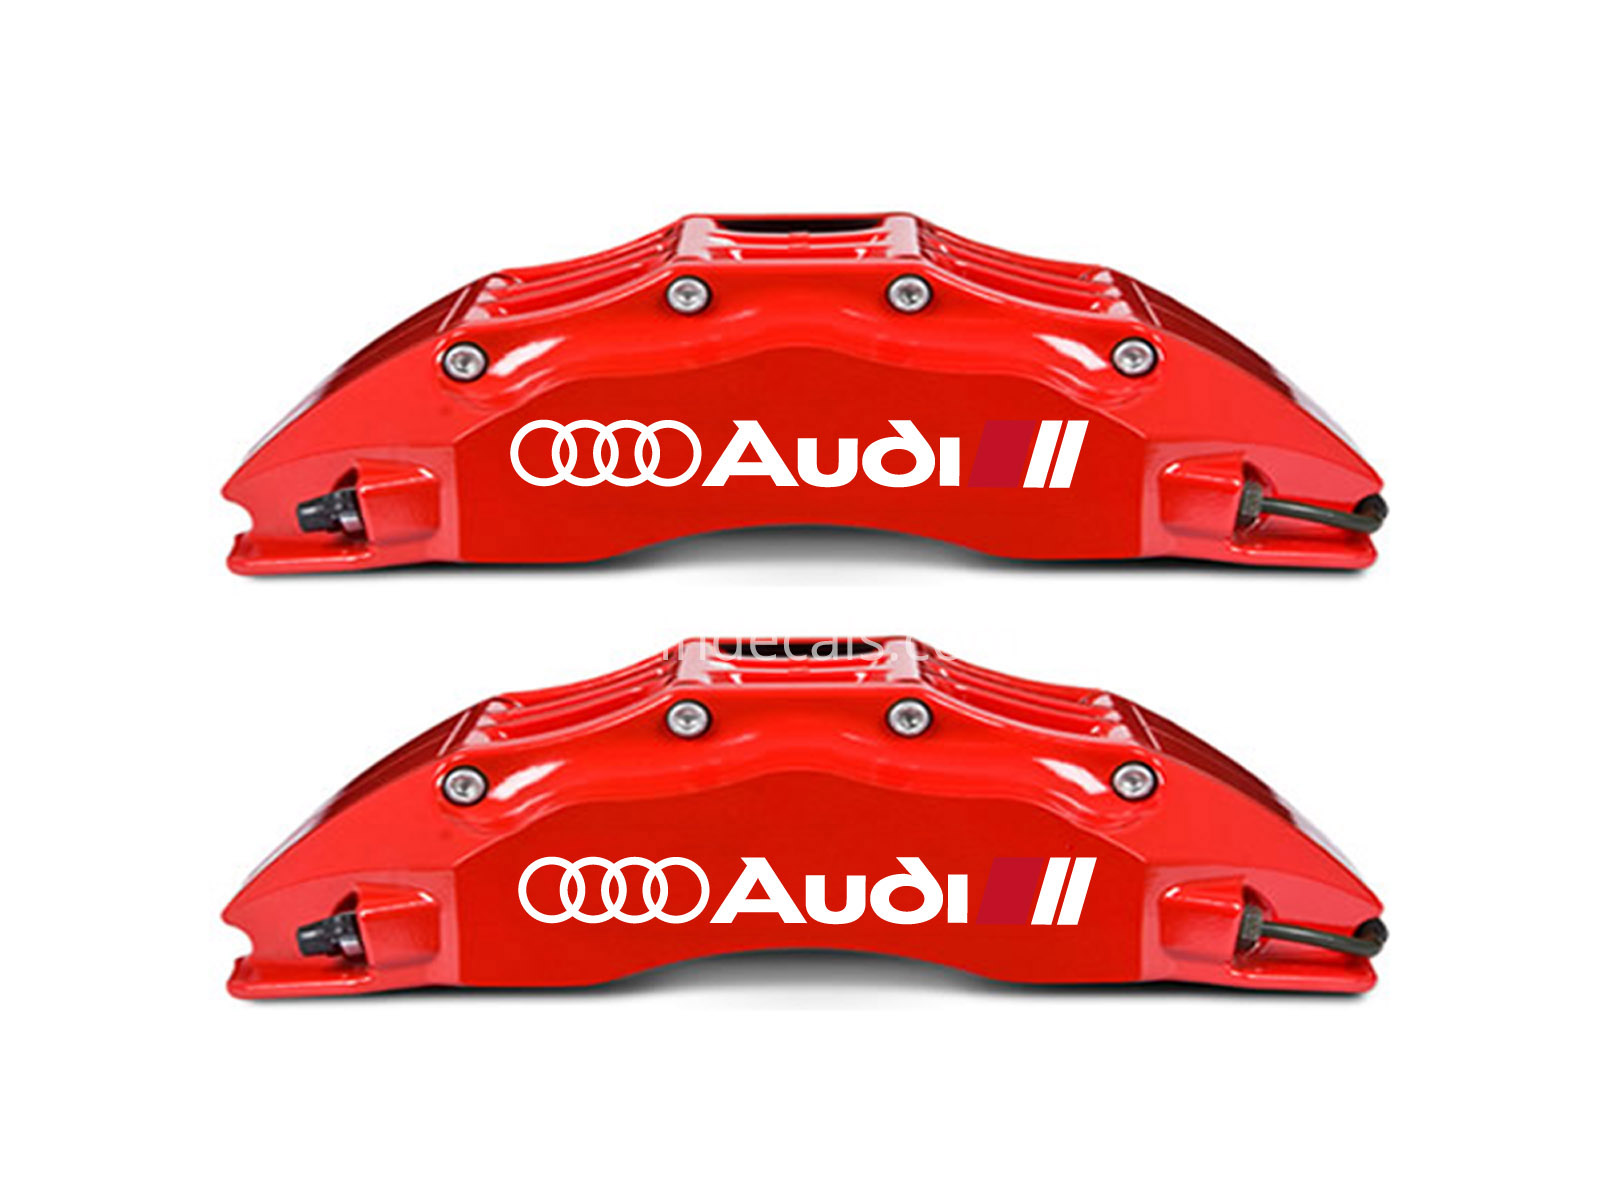 6 x Audi Stickers for Brakes - White